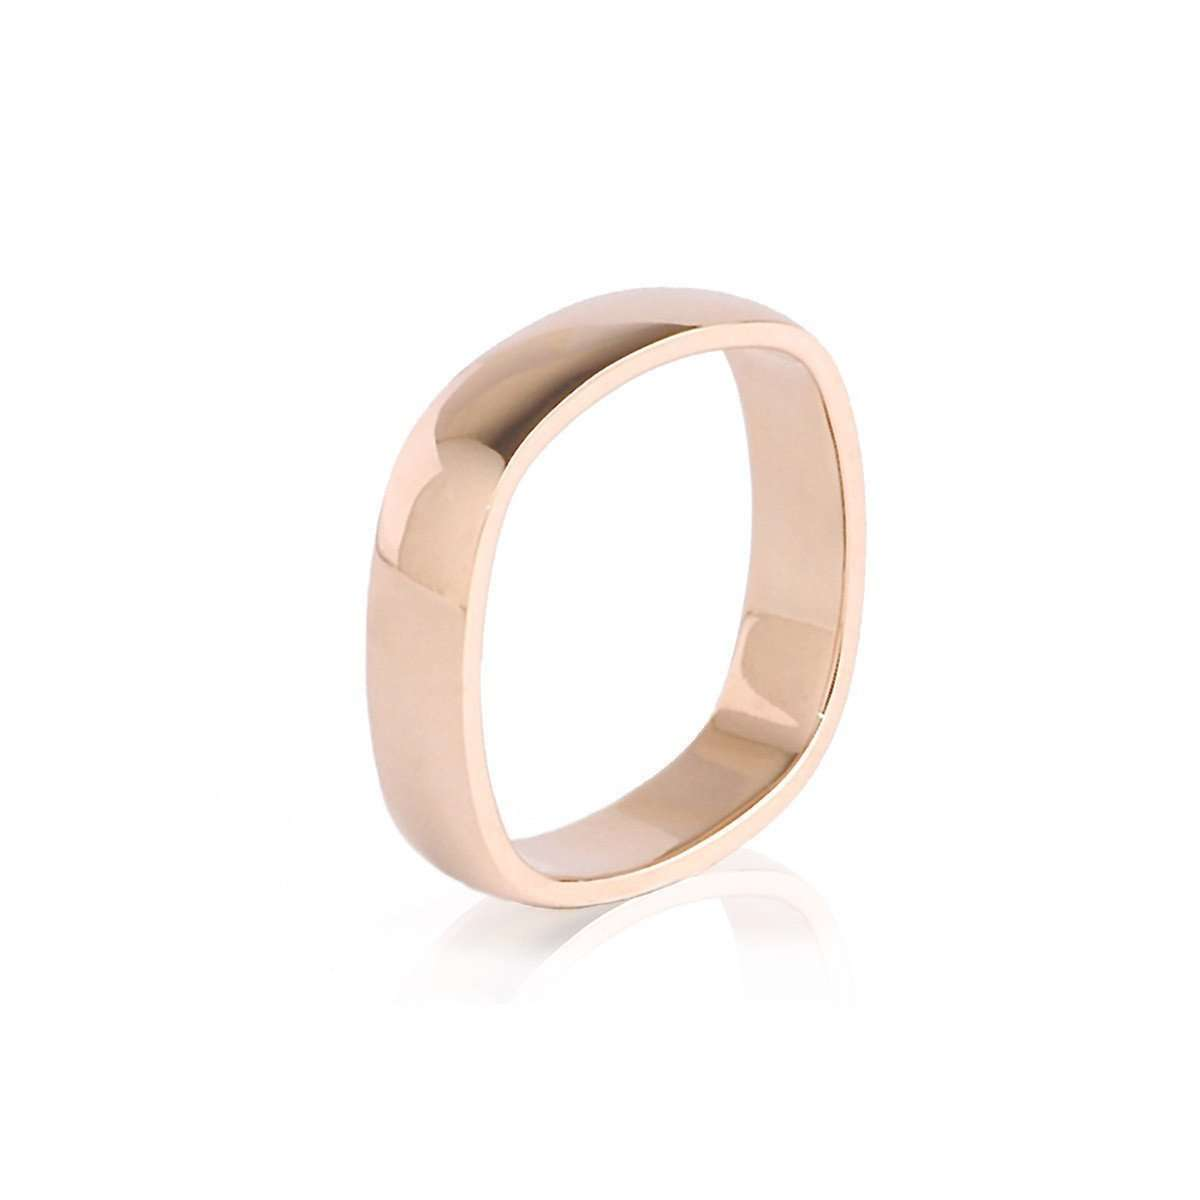 Men's Rose Gold Comfort-Fit Plain Wedding Band-Nigel OReilly Goldsmith and Jewellery Design-JewelStreet US